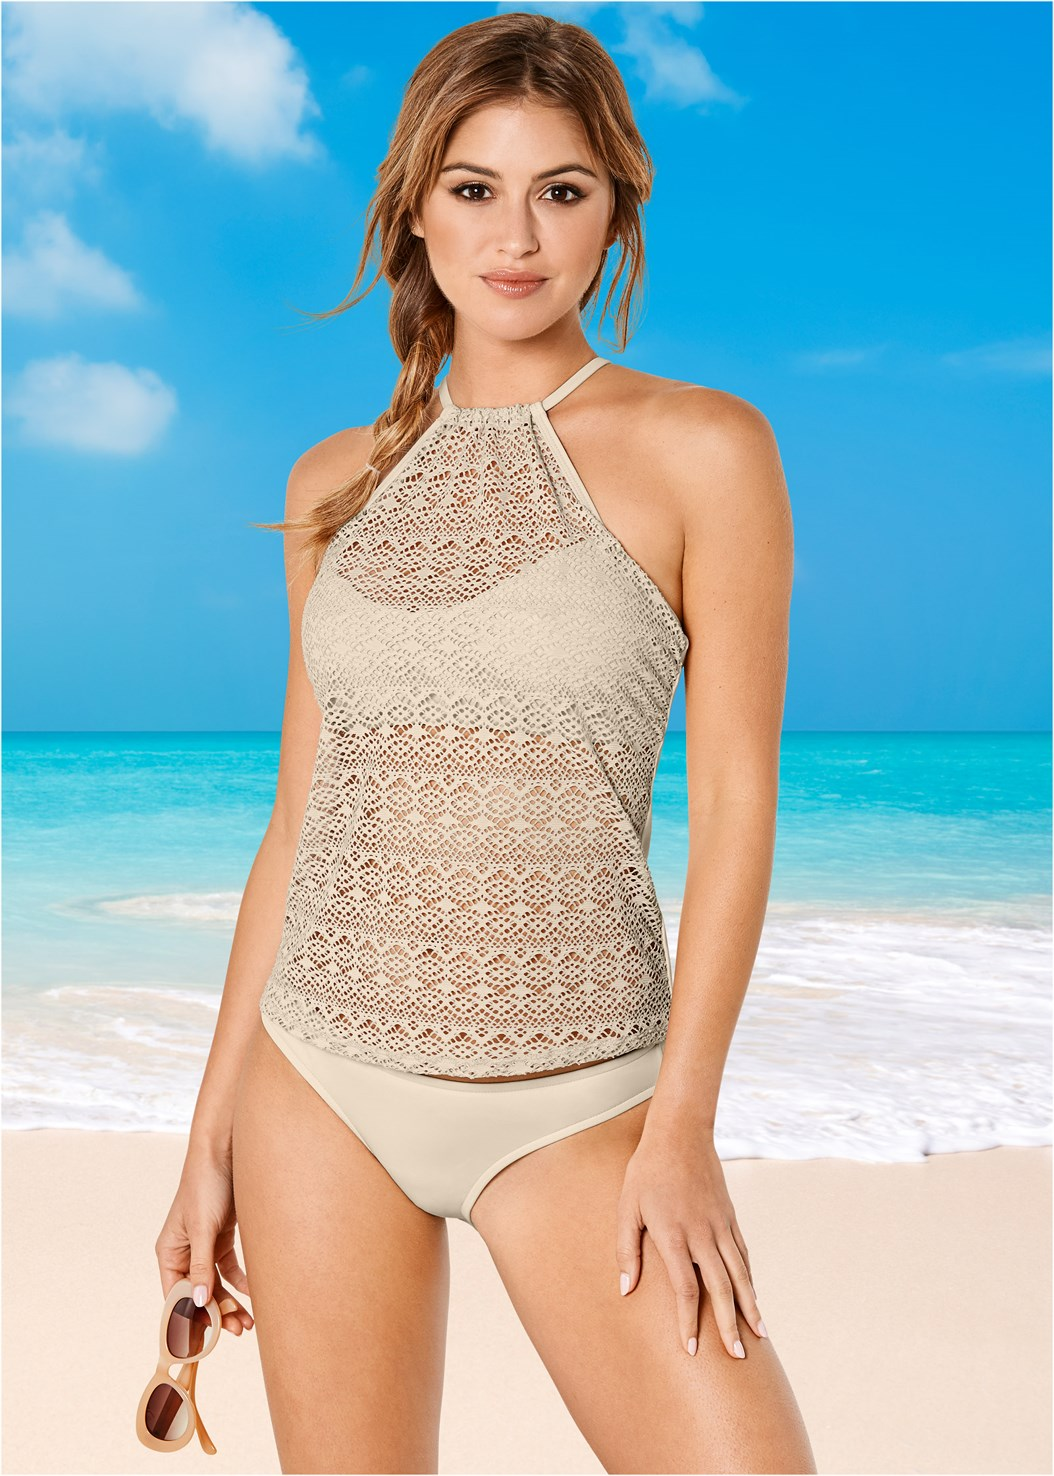 Low Rise Classic Bikini Bottom ,Shapely Ruched Bandeau Top,Crochet High Neck Halter Top